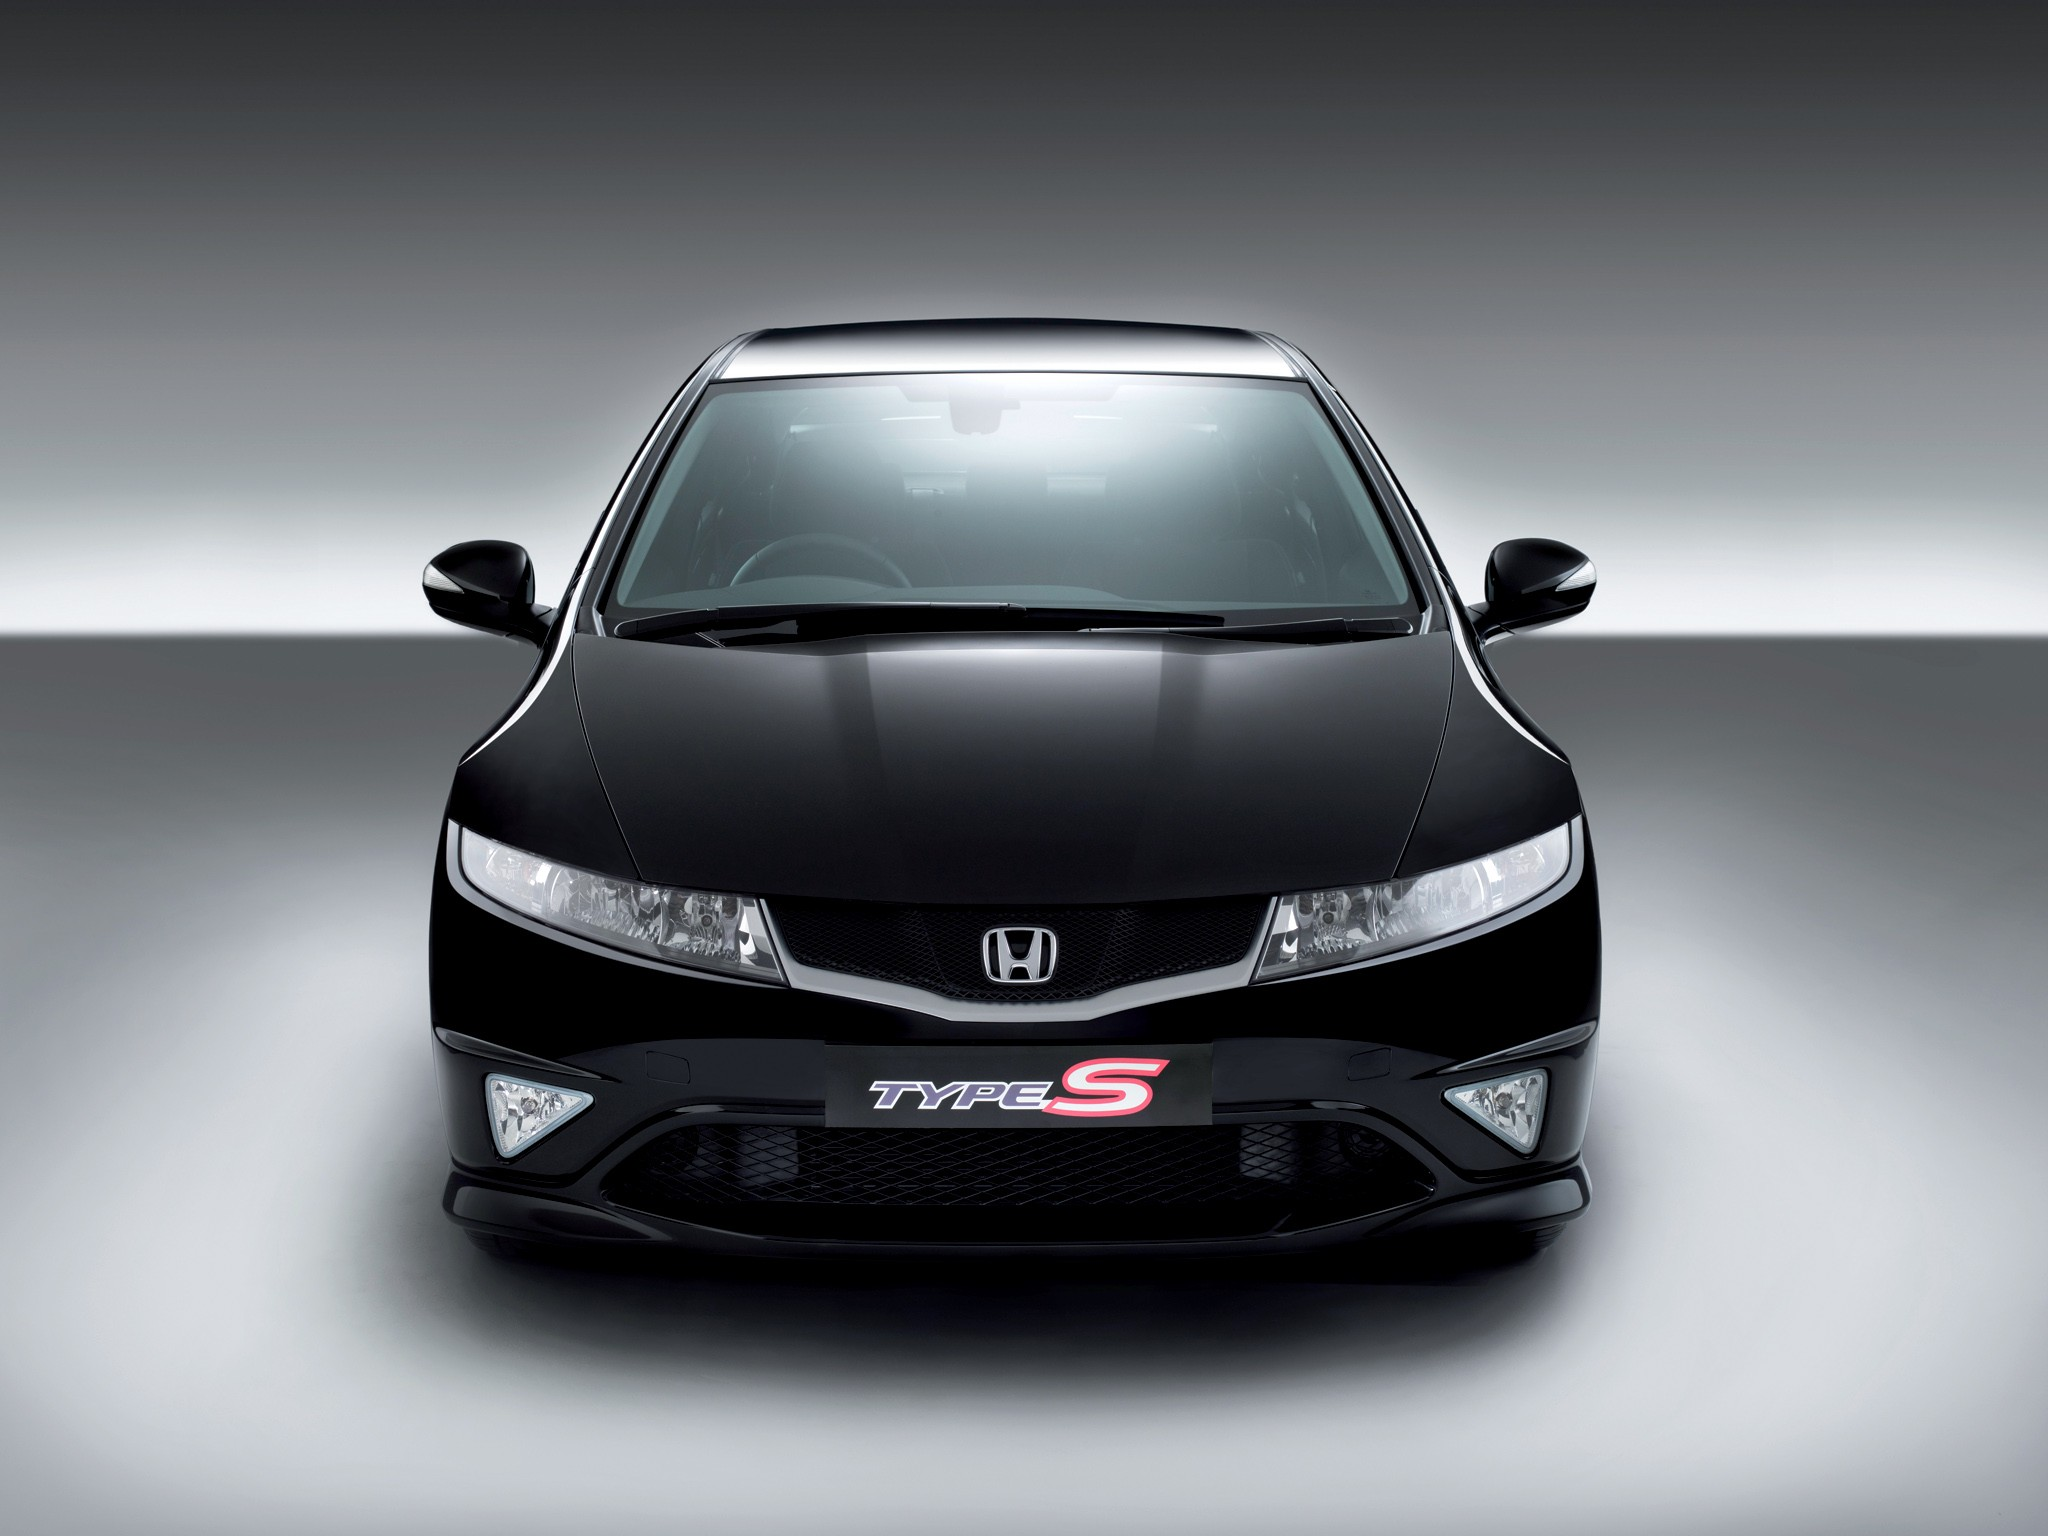 honda civic type s - photo #14